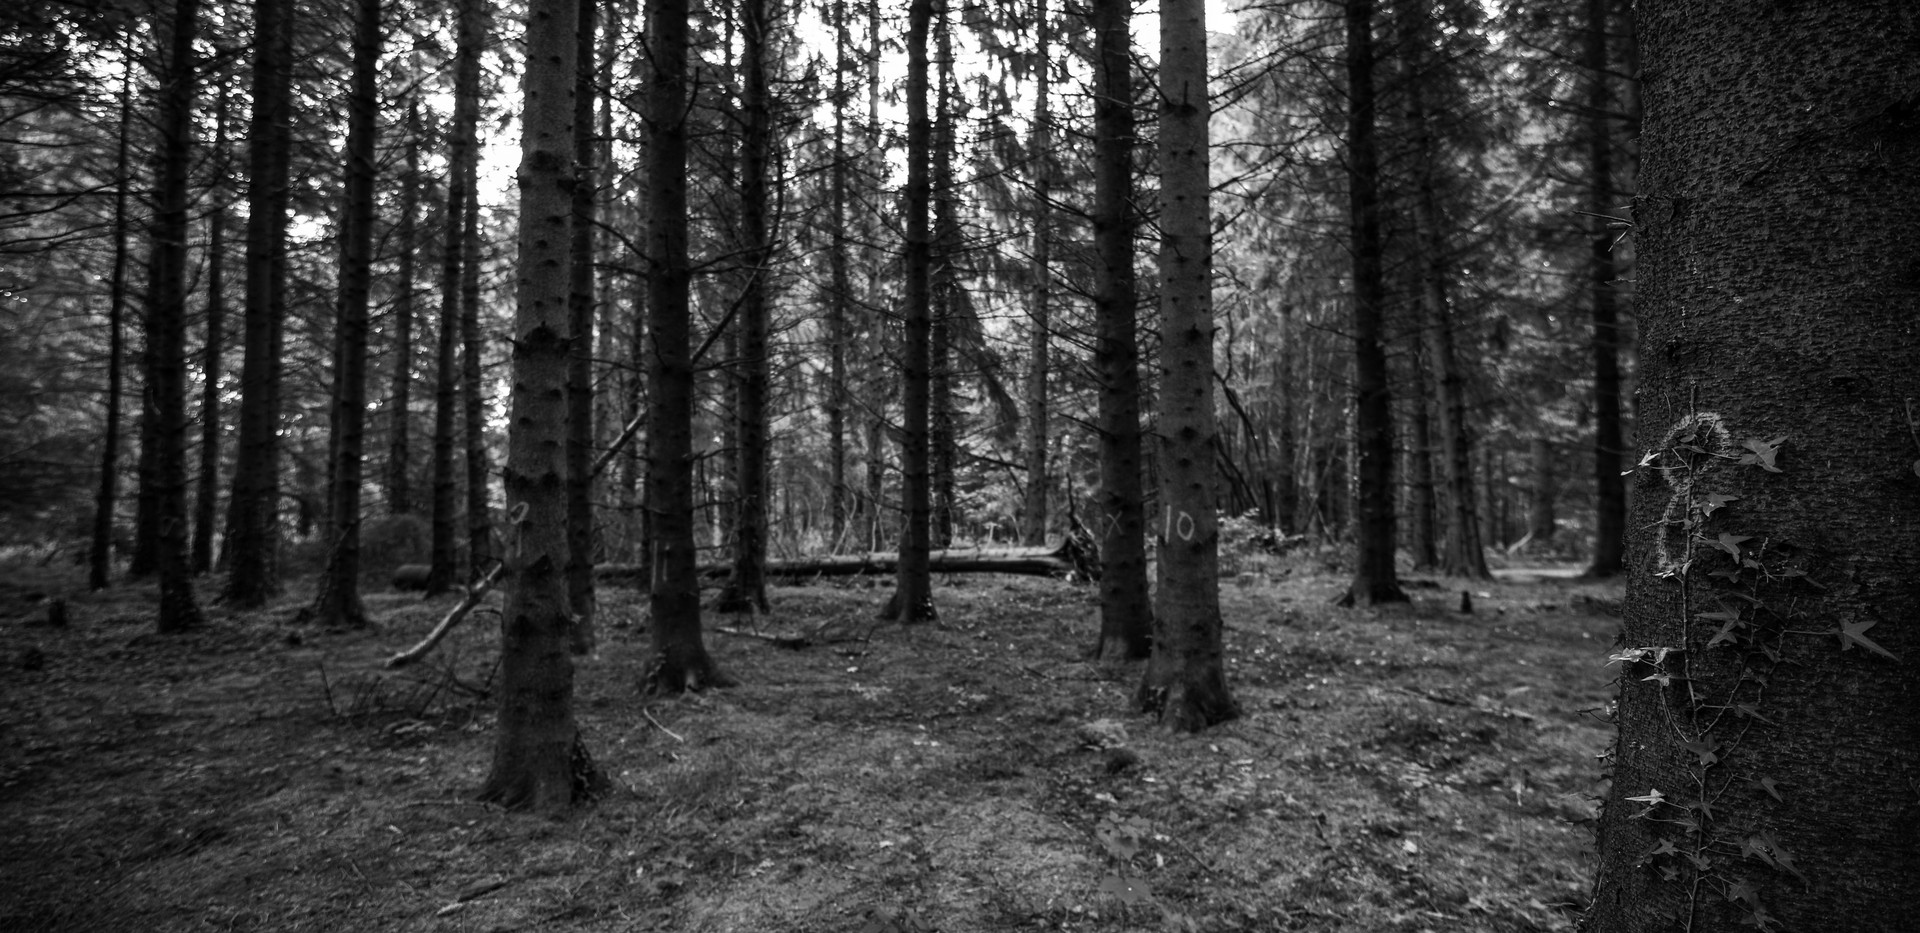 Irelandforest8bw.jpg